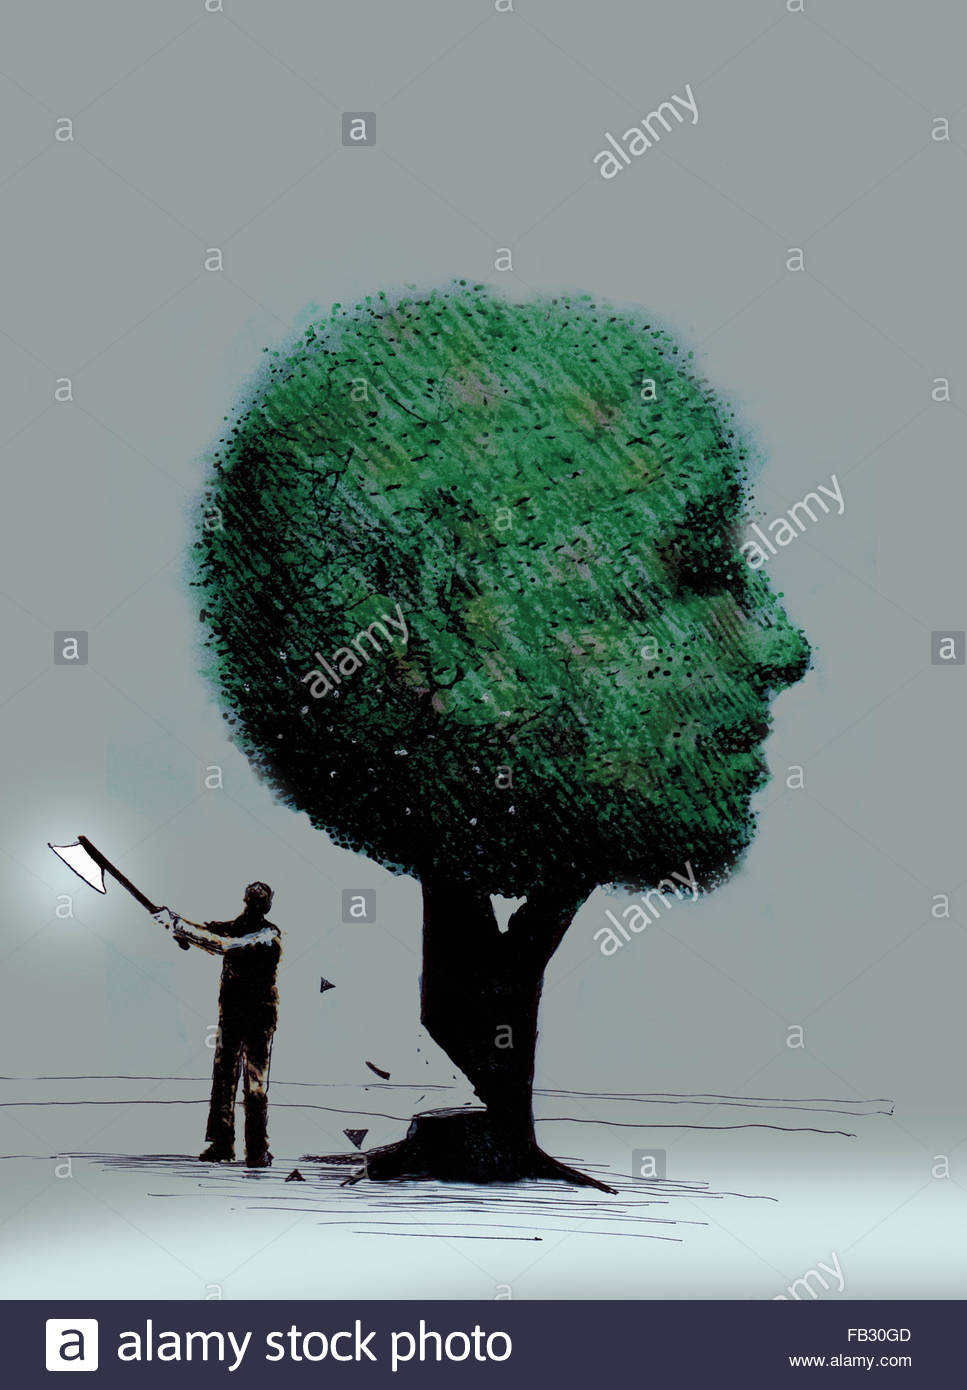 Man chopping down anthropomorphic face tree - Stock Image